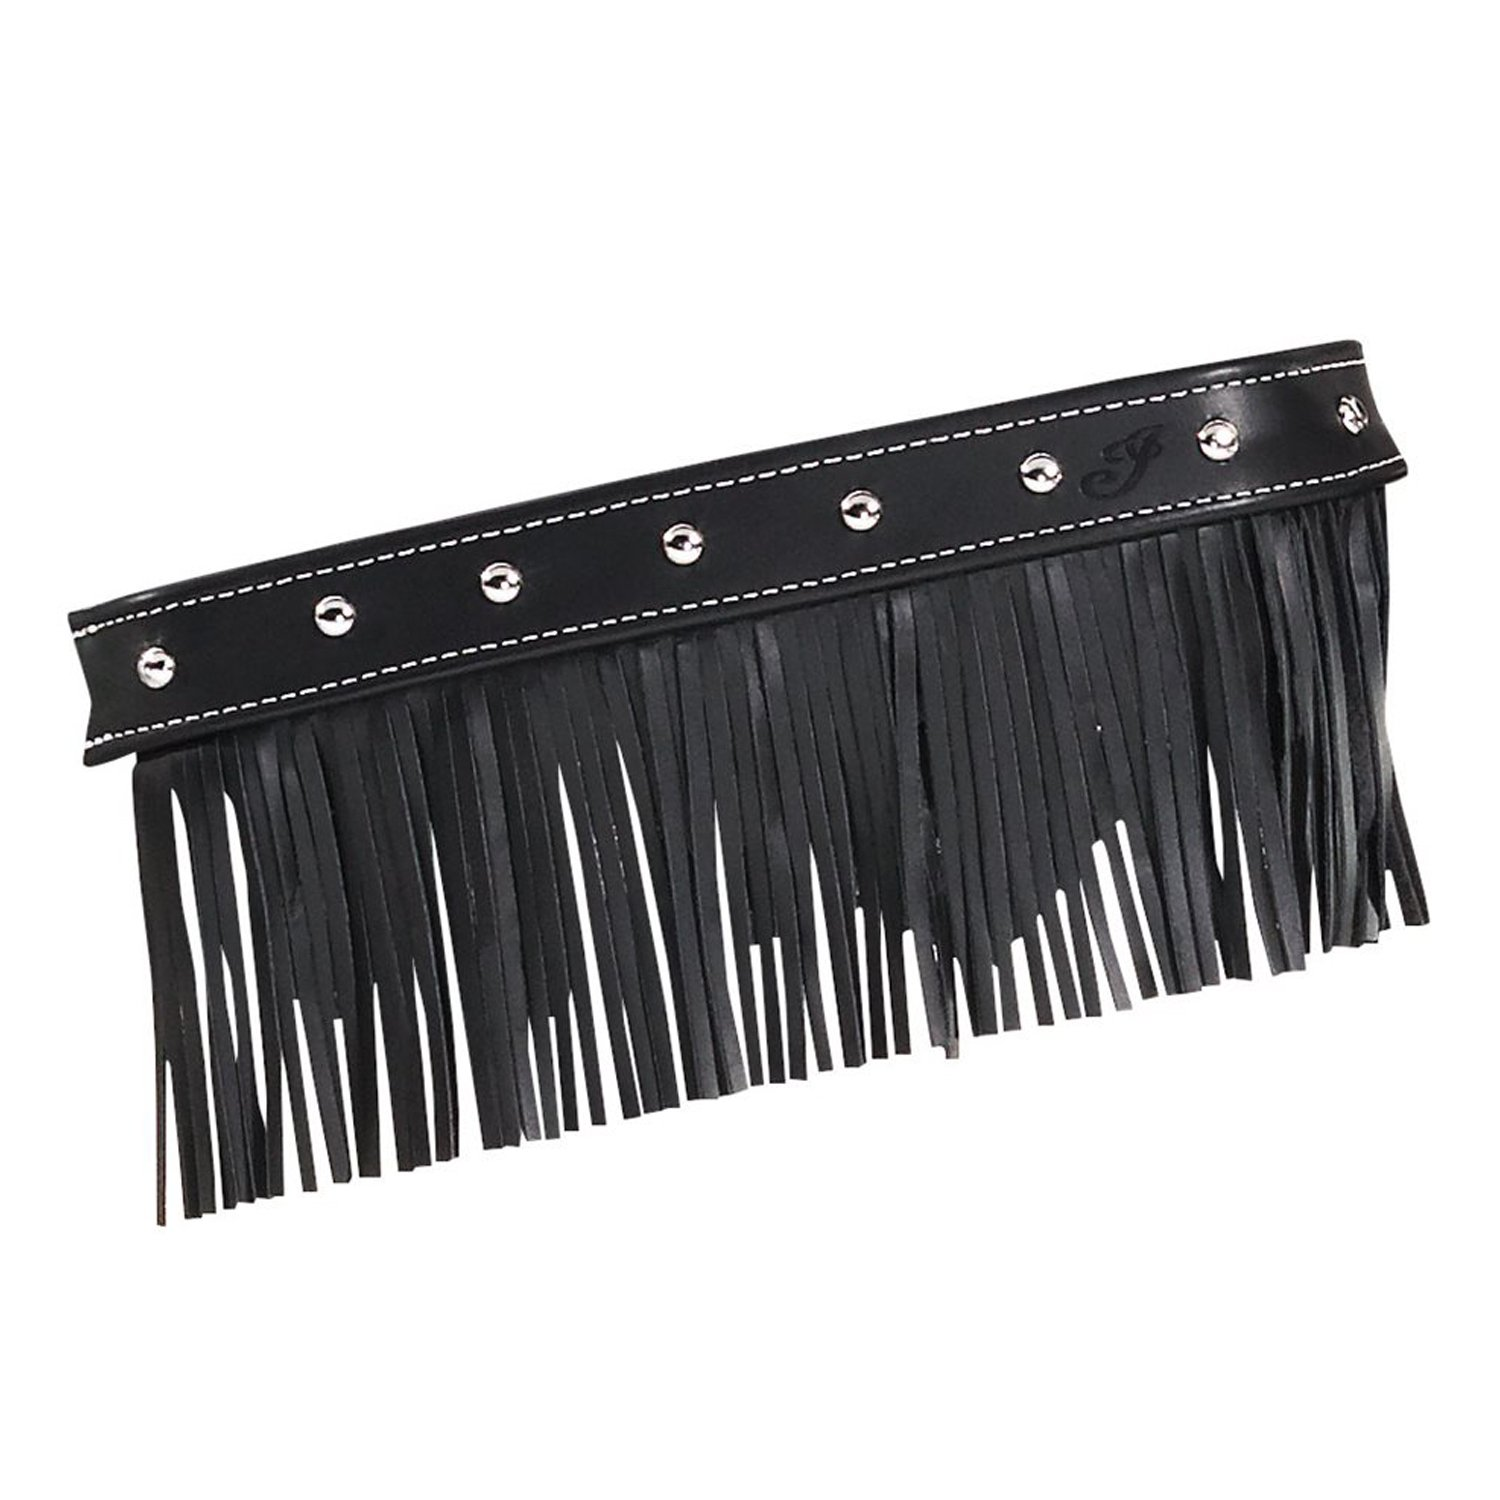 Genuine Leather Floorboard Trim With Fringe – Black w/ Studs